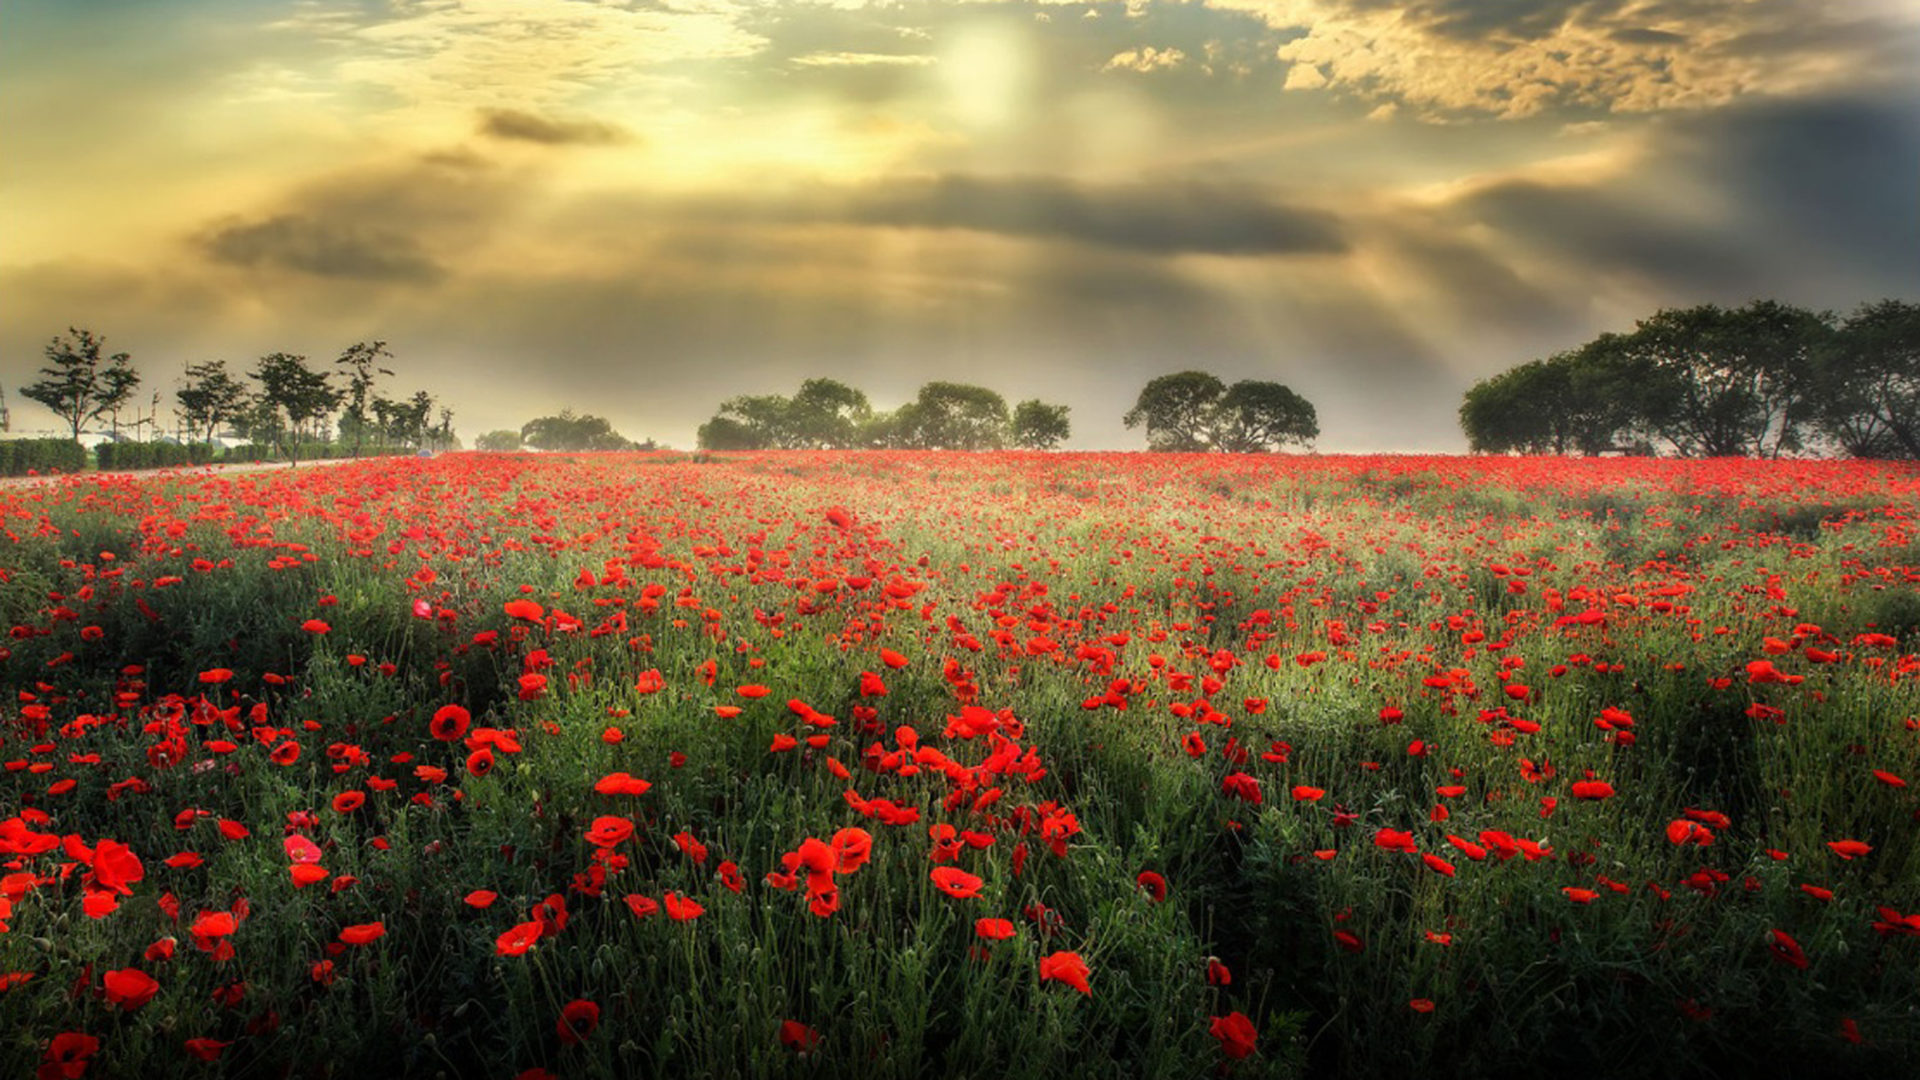 Poppy Wallpaper For Iphone Meadow With Red Poppies Dark Black Clouds Sun Rays